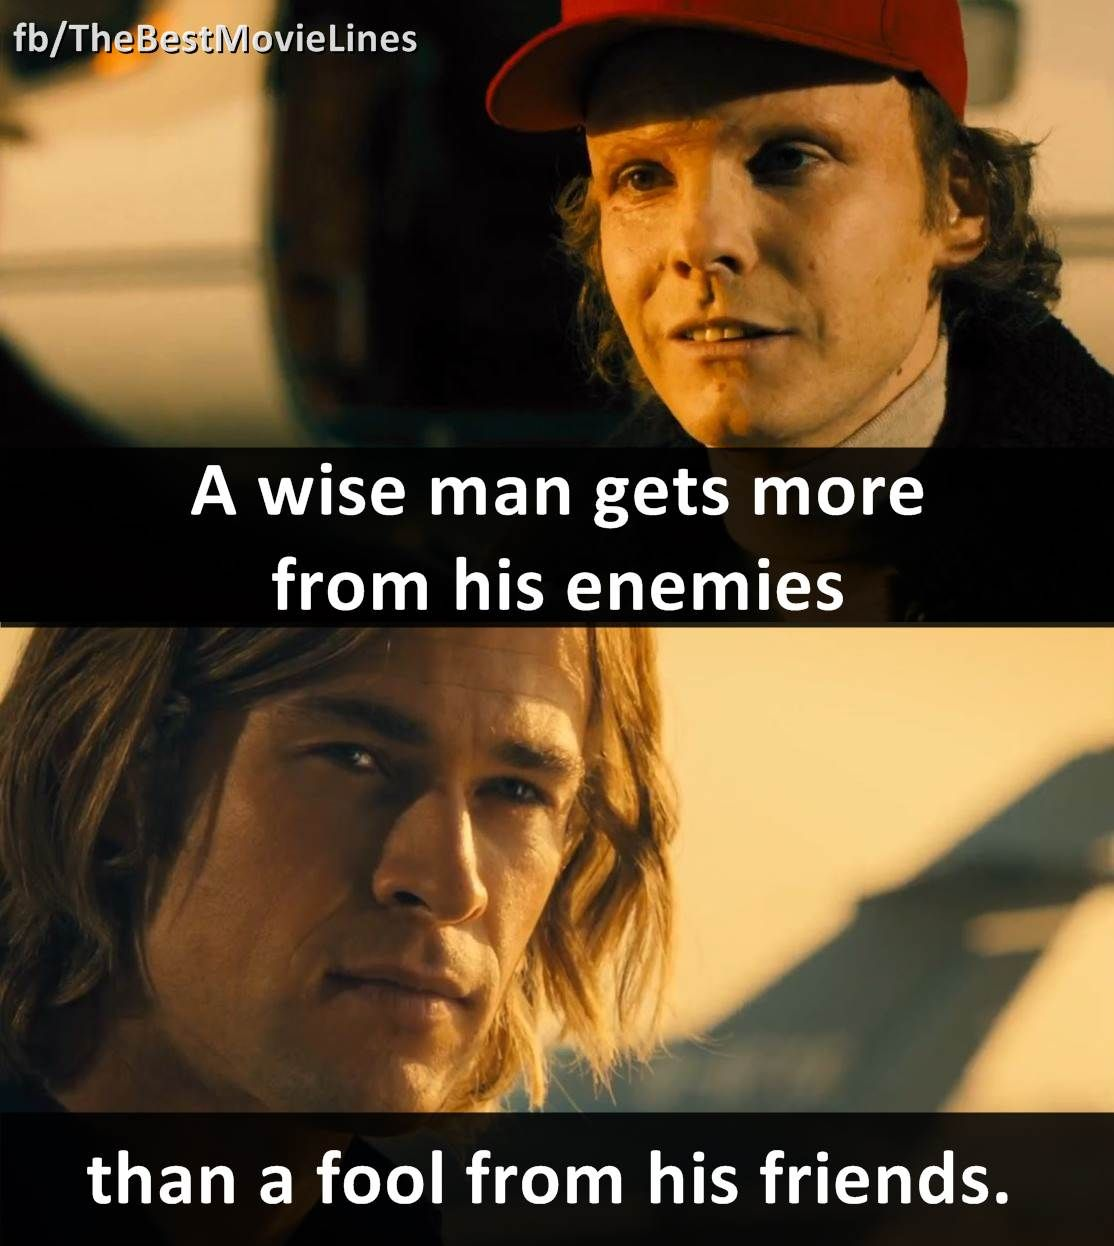 quota wise man gets more from his enemies than a fool from